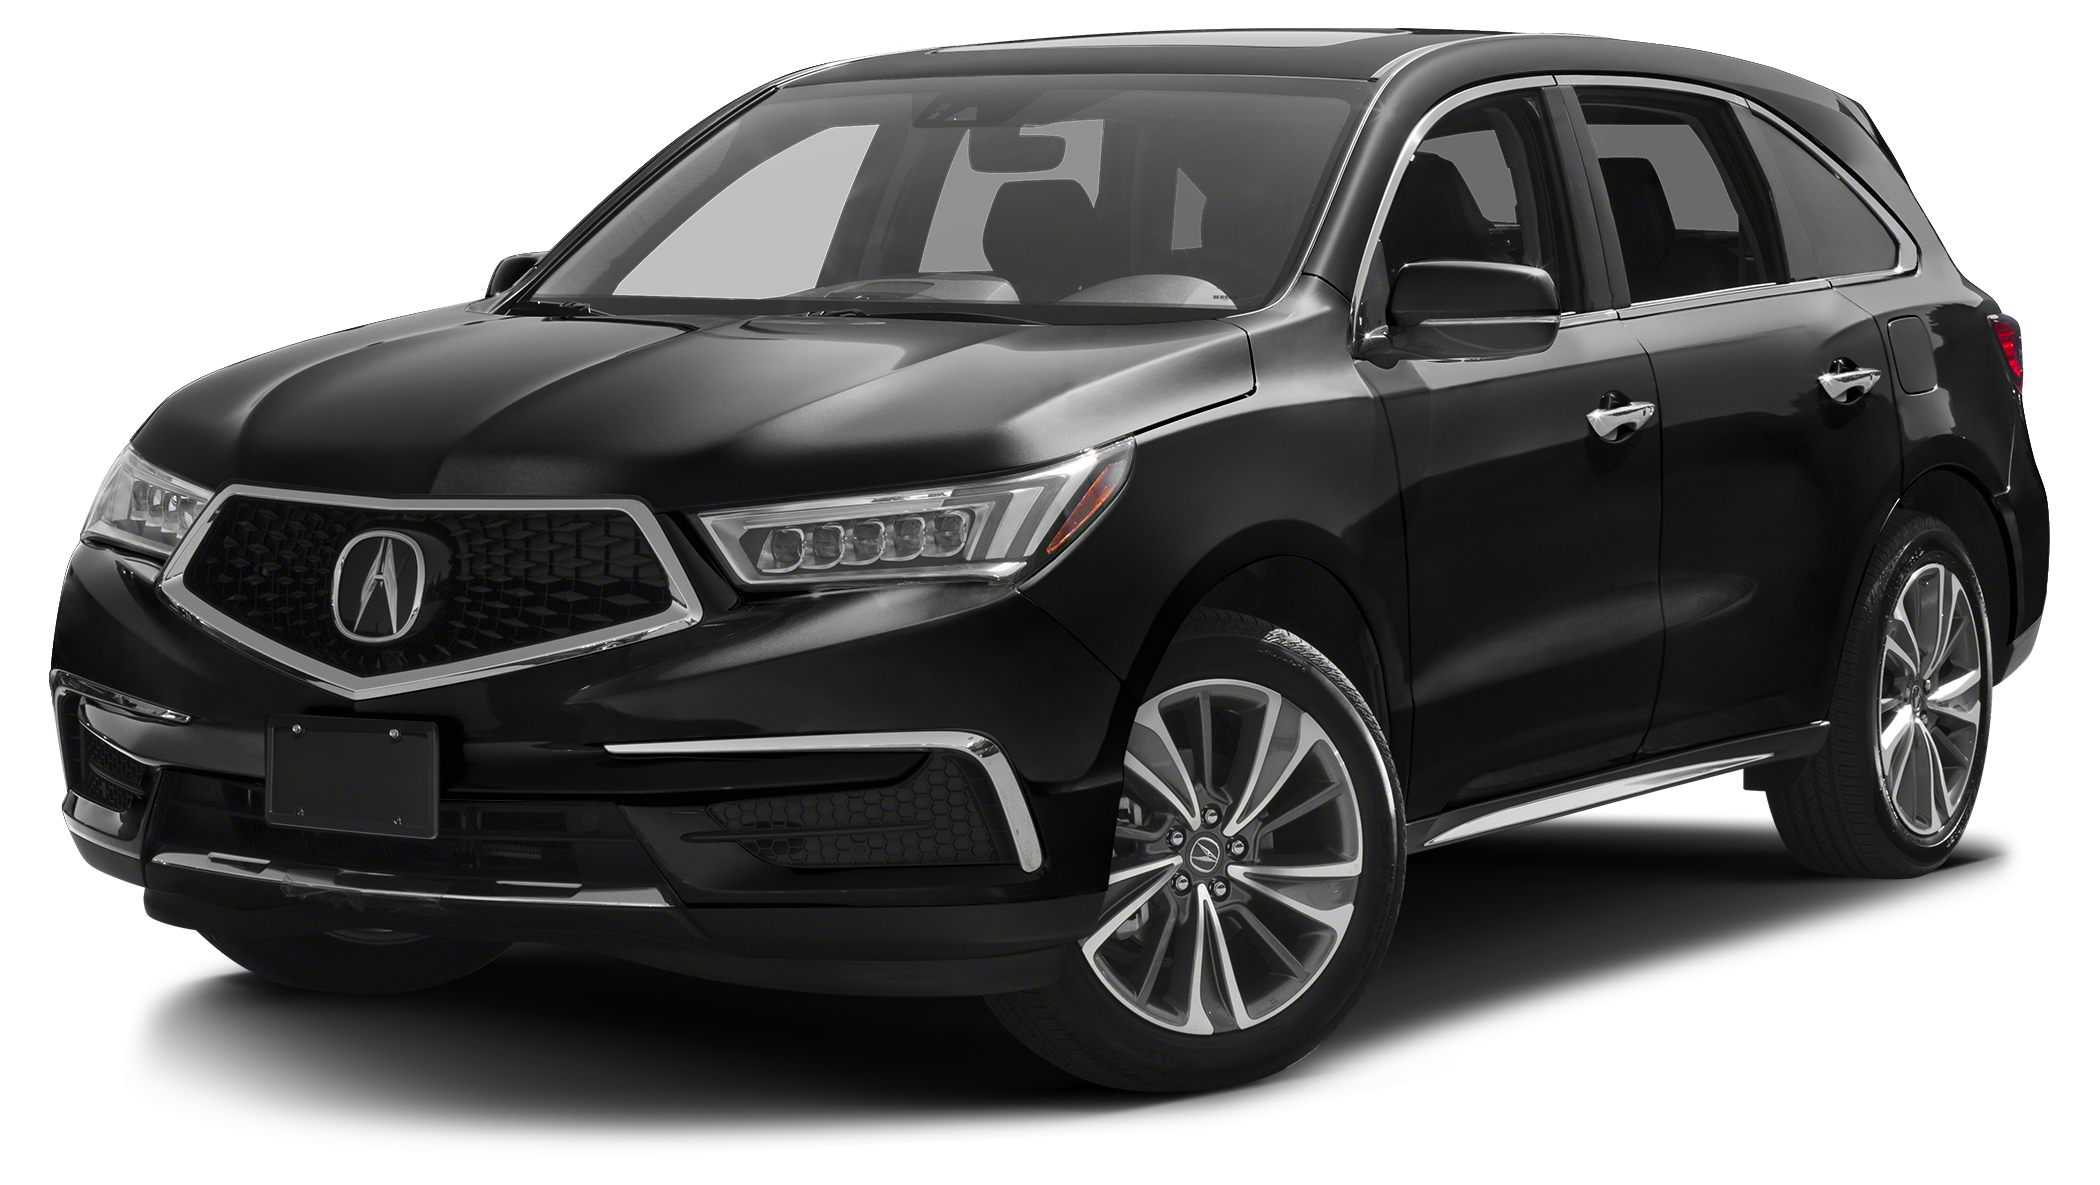 2017 acura mdx for sale in bethesda md 5fryd4h5xhb040208. Black Bedroom Furniture Sets. Home Design Ideas